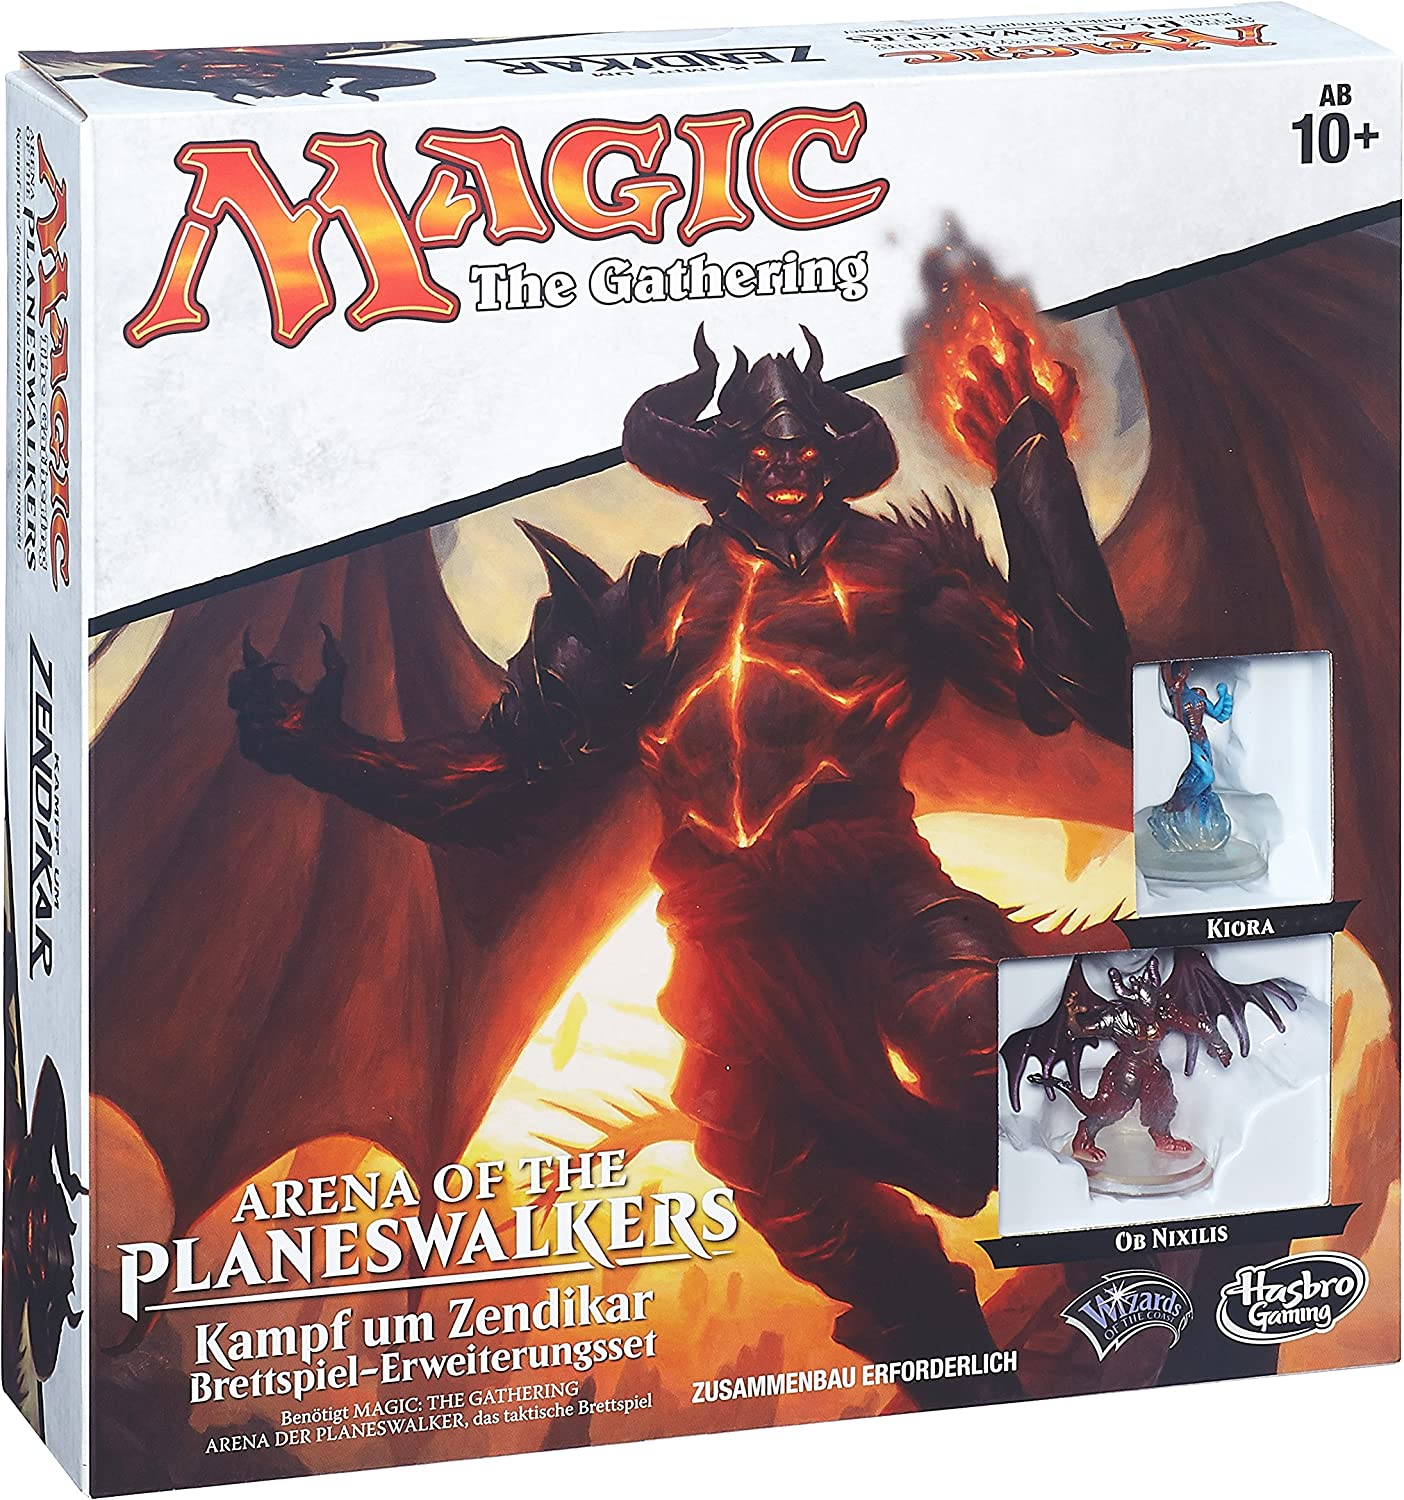 Hasbro Juegos b6925100 – Magic The Gathering – Battle for zendikar Expansion, Fantasía Parte: Amazon.es: Juguetes y juegos